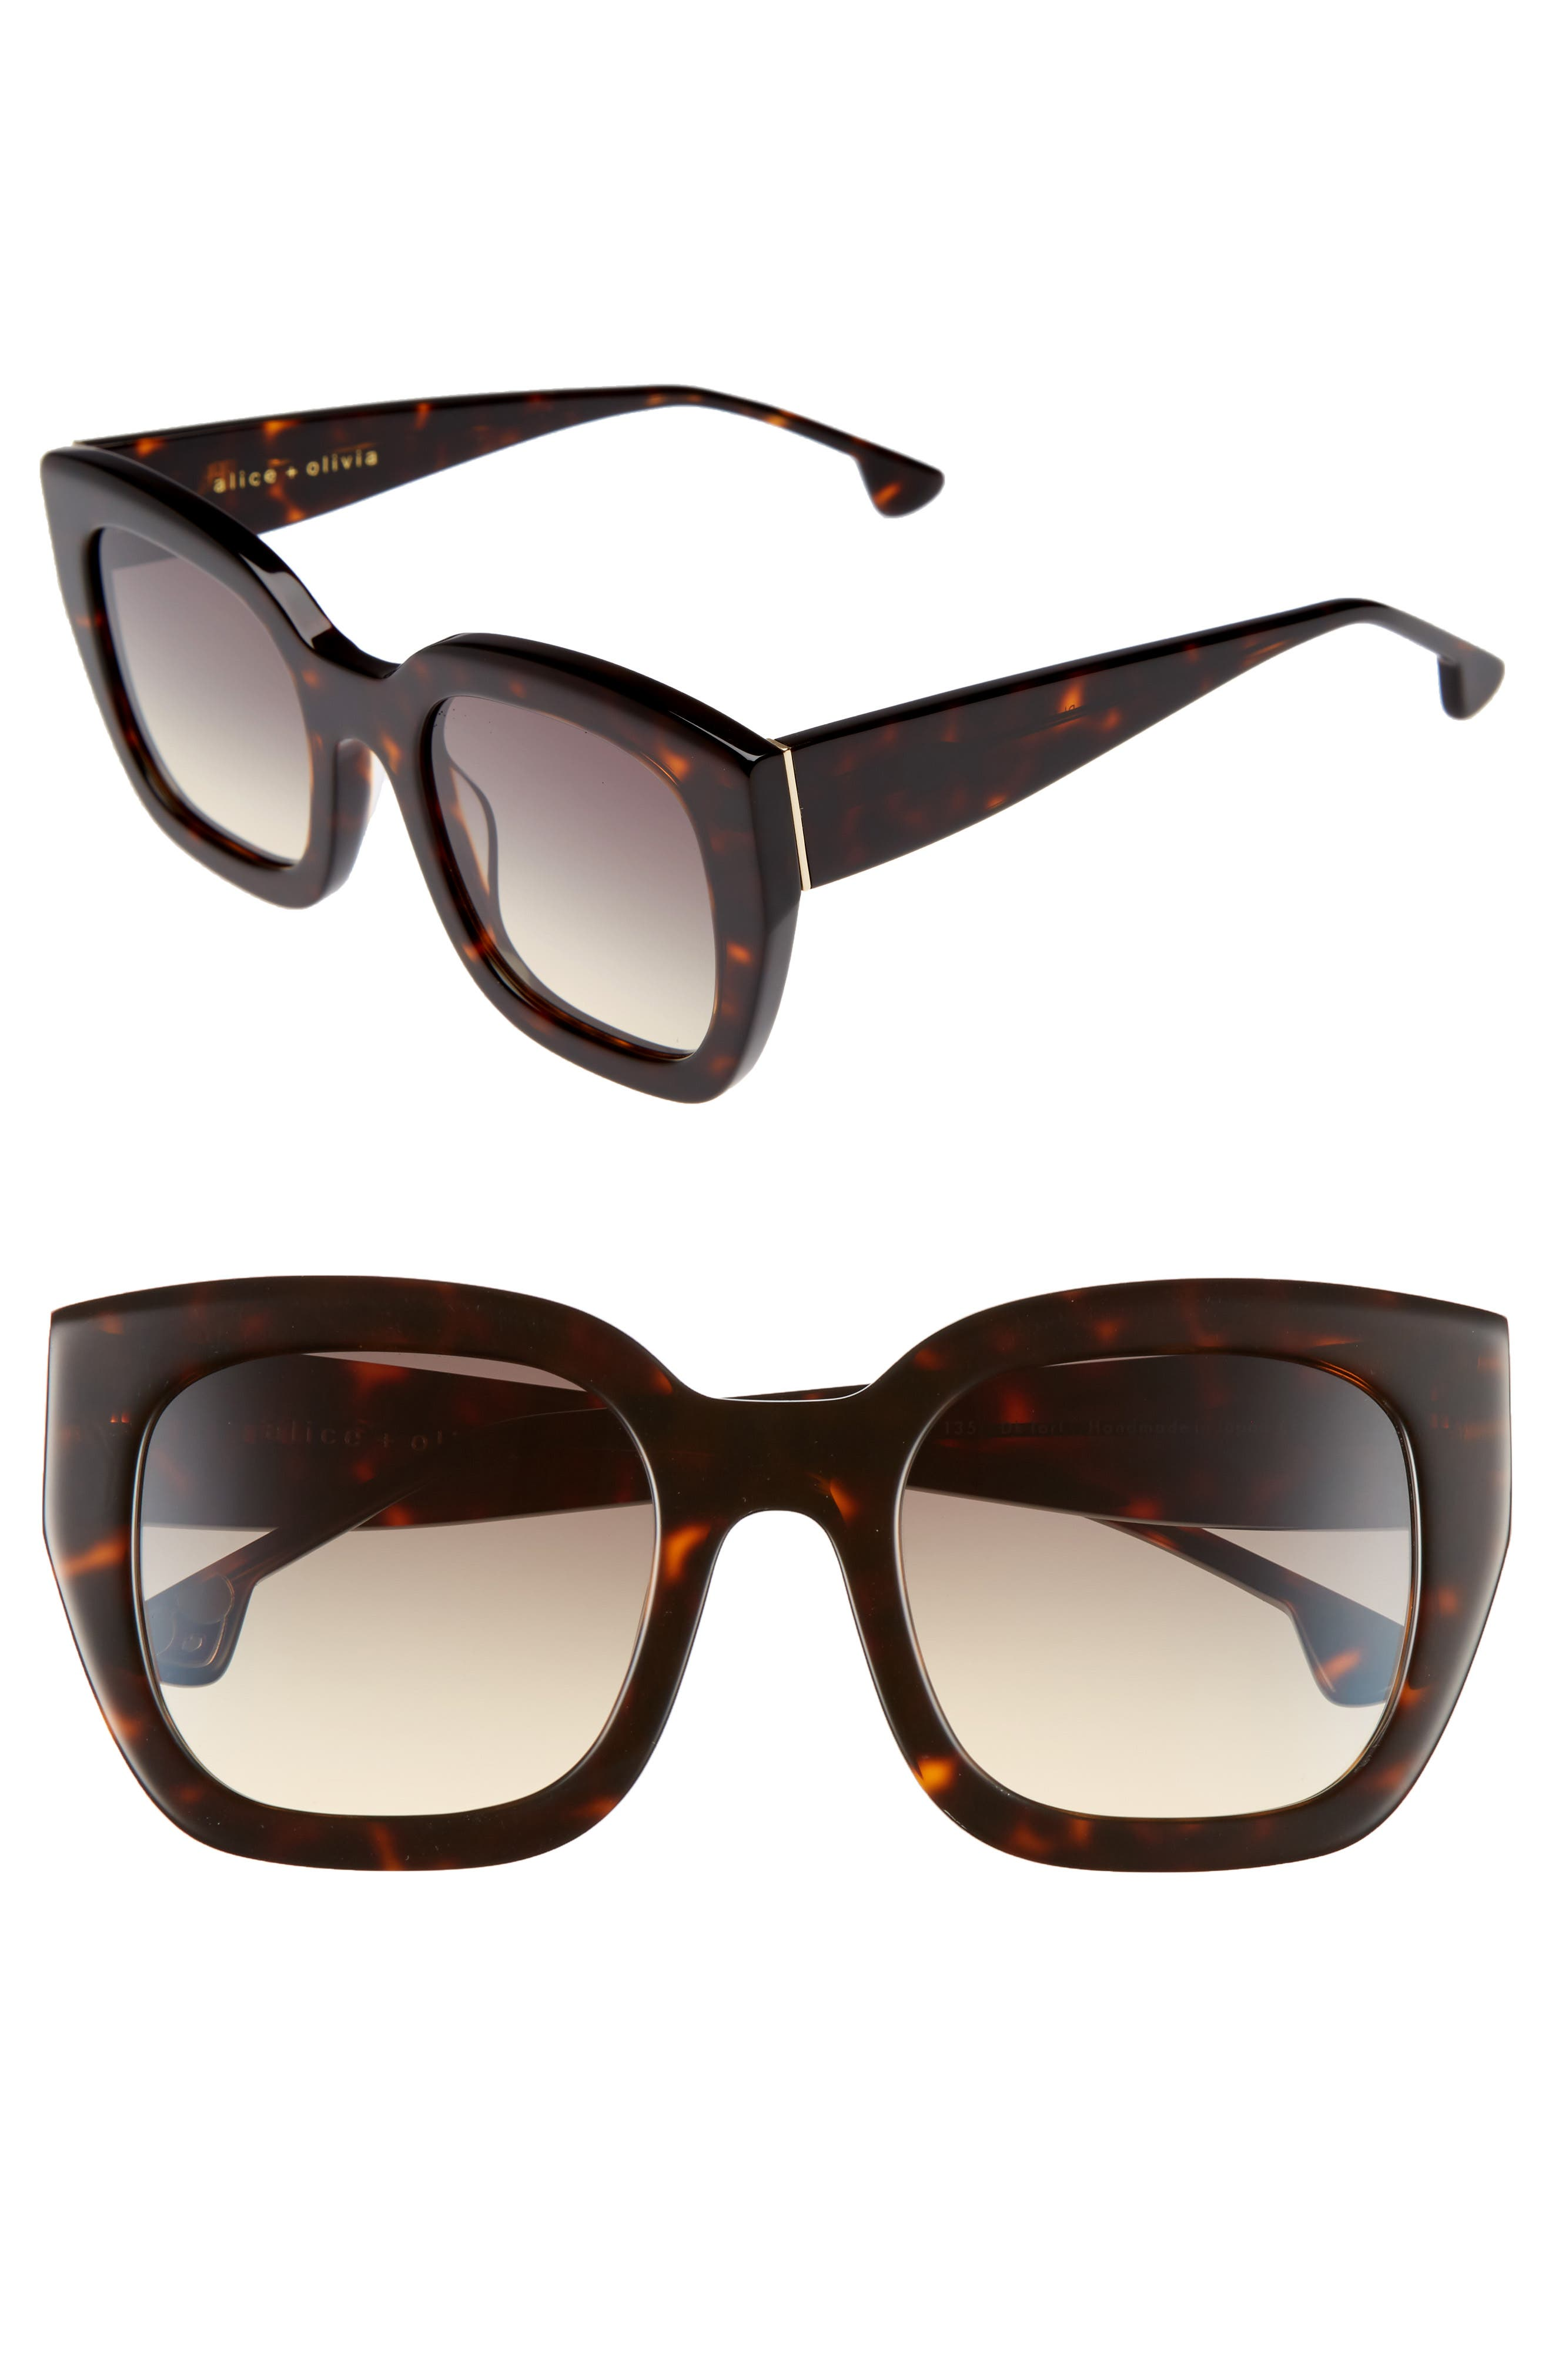 Alternate Image 1 Selected - Alice + Olivia Aberdeen 50mm Square Sunglasses